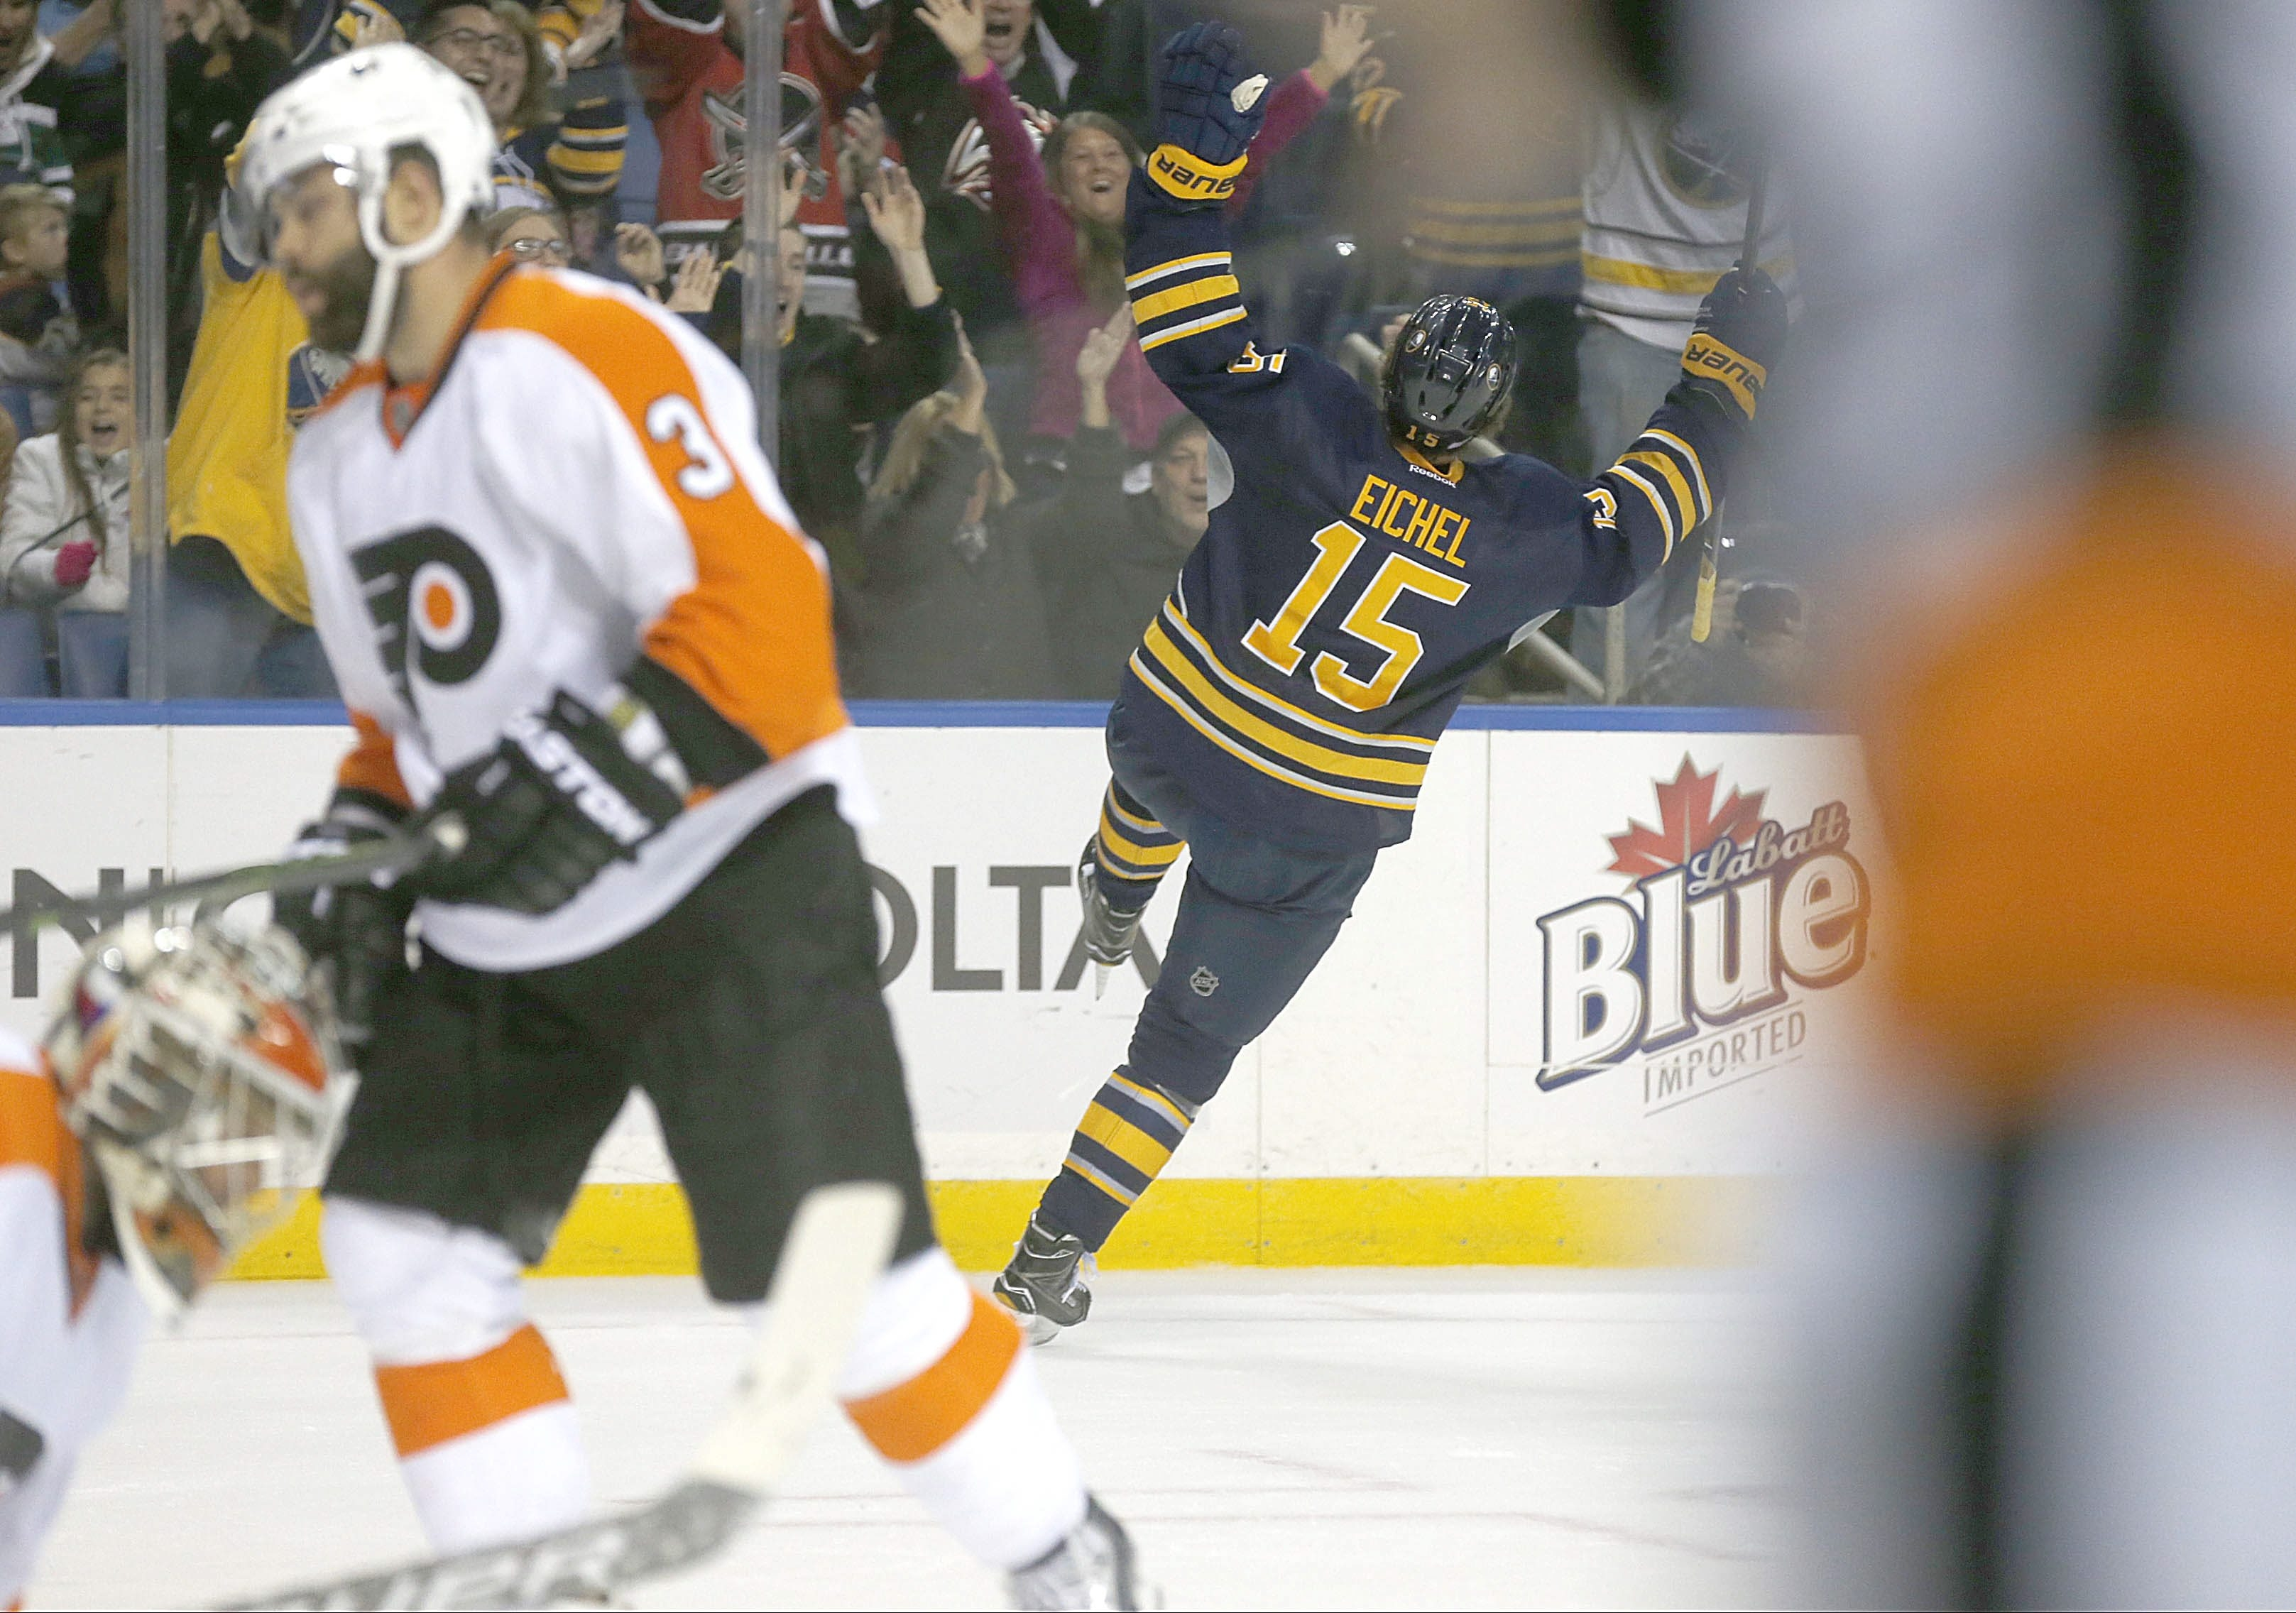 Jack Eichel goes into full celebration mode after beating Flyers goalie Michal Neuvirth for a goal in the first period.